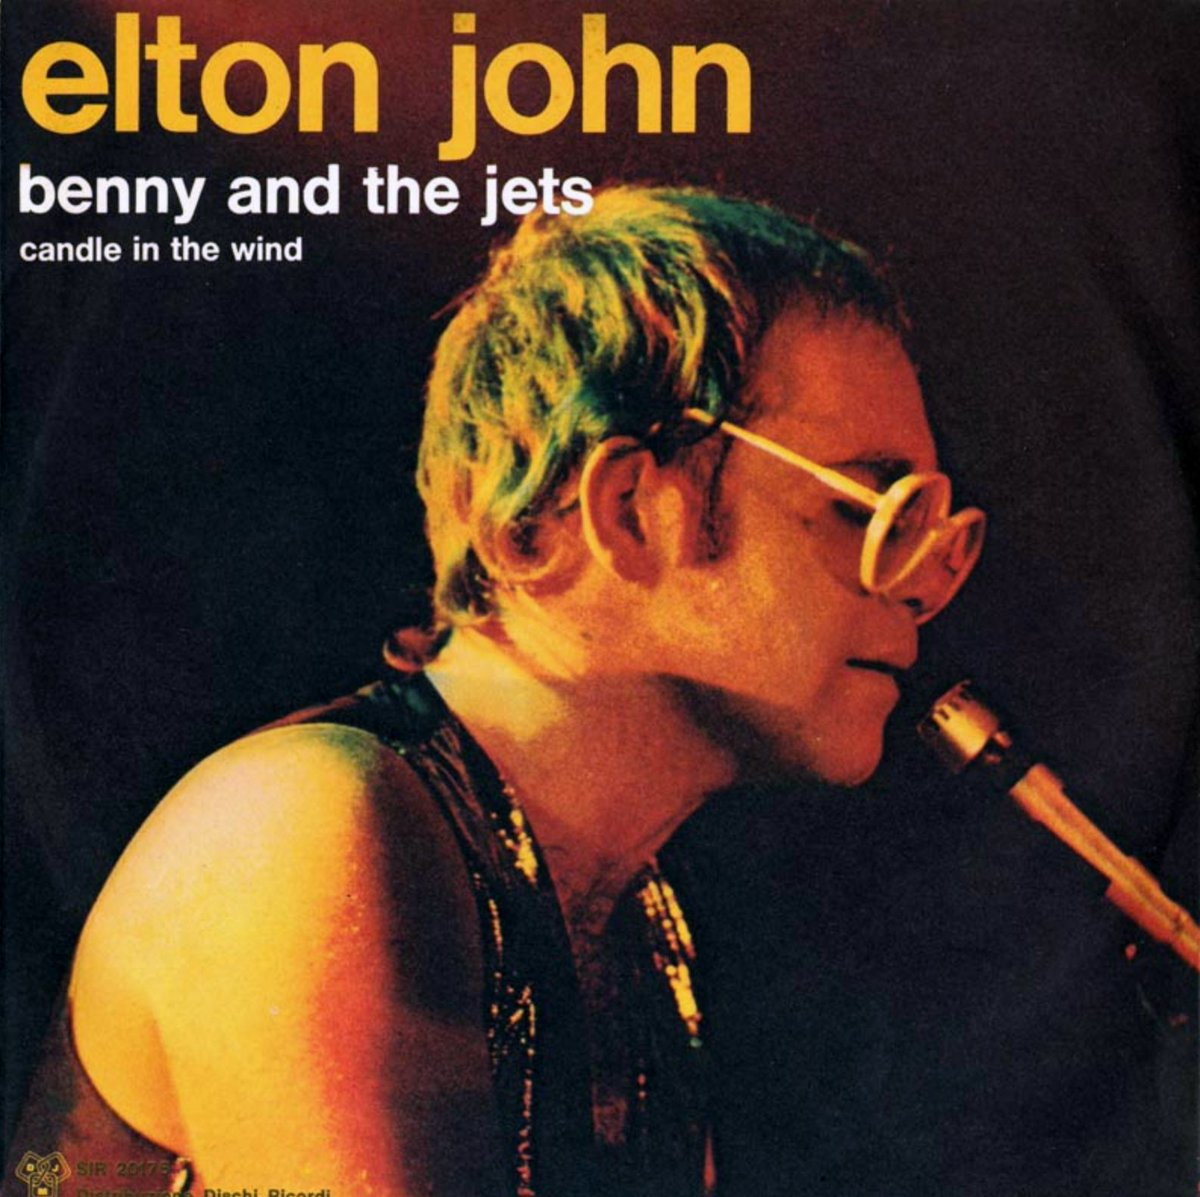 Elton John – Benny and the Jets